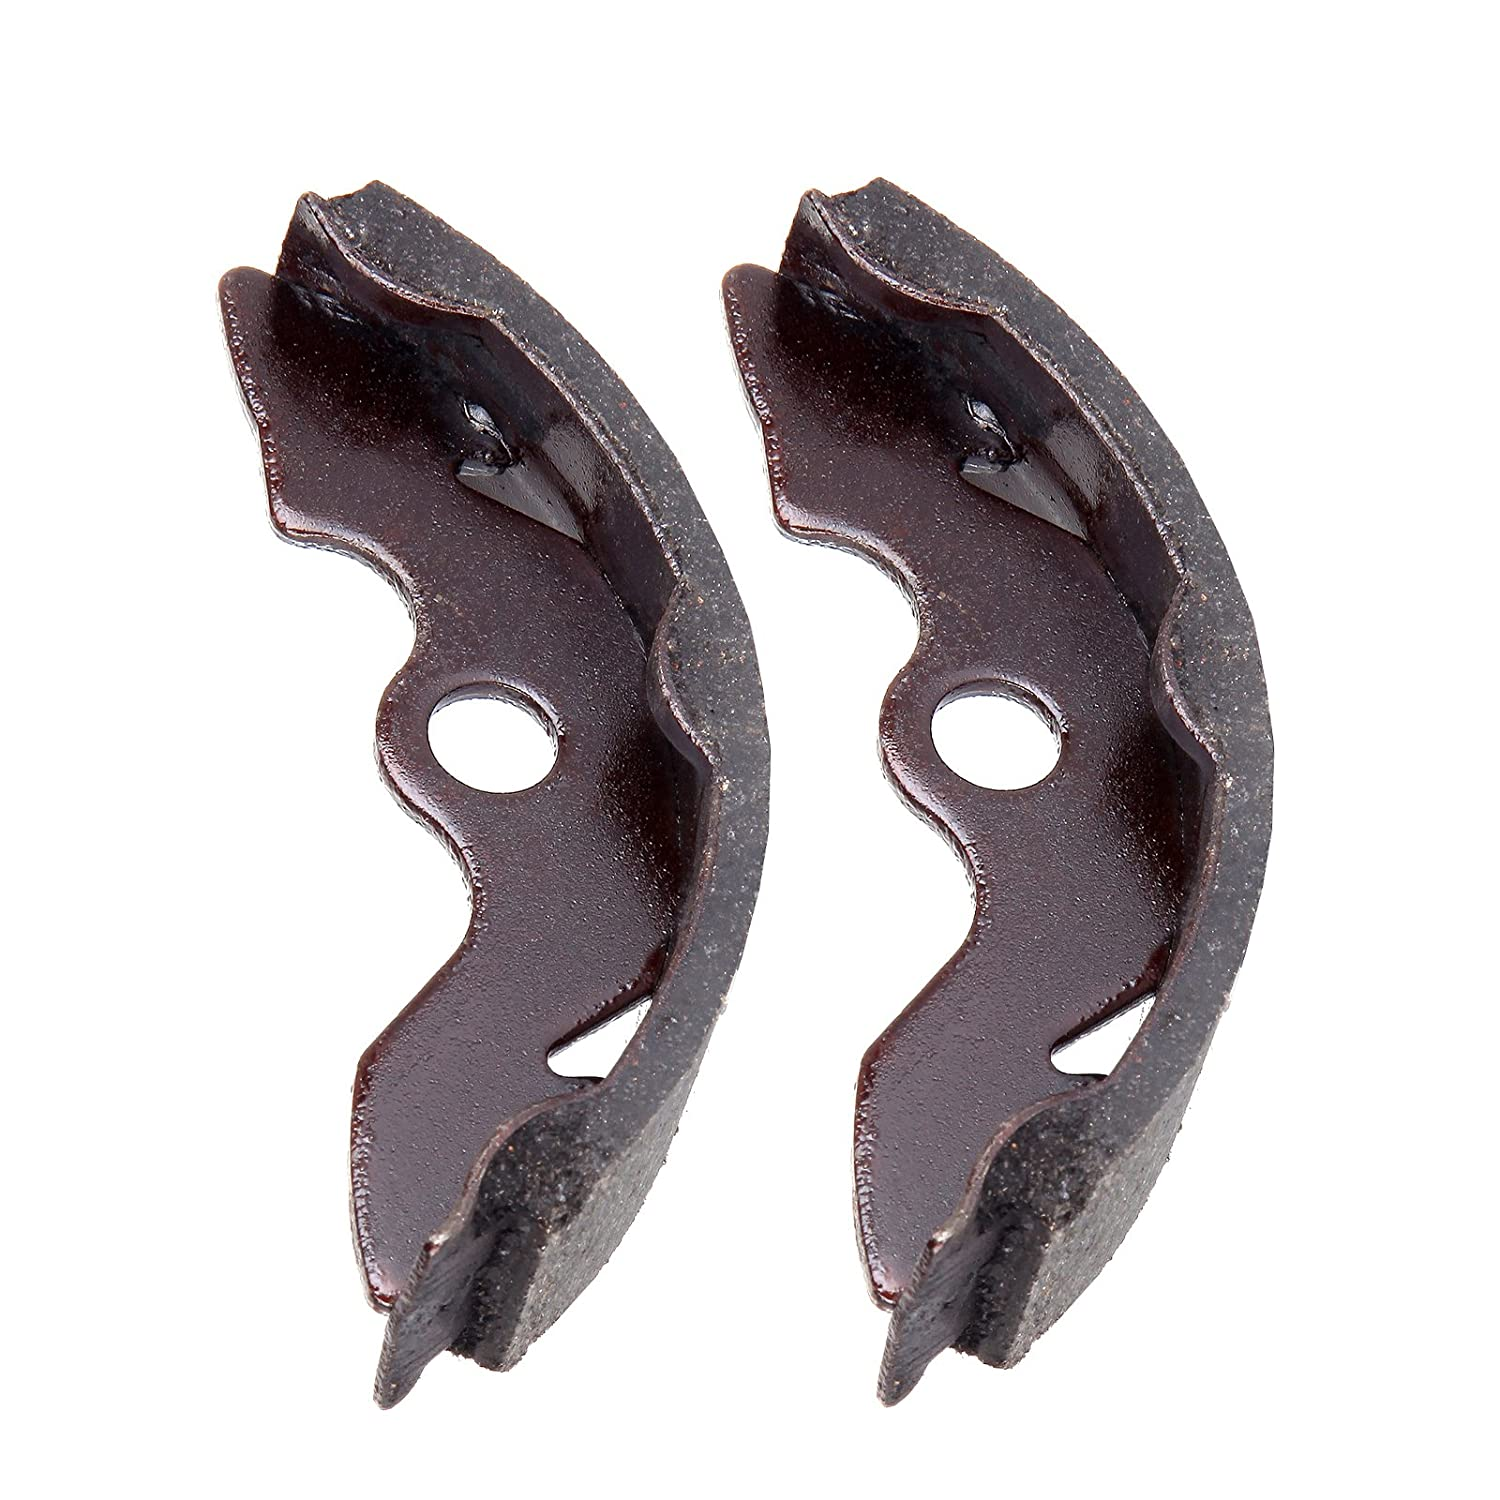 CCIYU Front Brake Shoes Fit For 1988 1989 1990 1991 1992 1993 1994 1995 1996 1997 1998 1999 2000 Honda FourTrax 1997 1998 1999 2000 2001 2002 2003 2004 2005 2006 2007 2008 2009 2011 Honda Recon